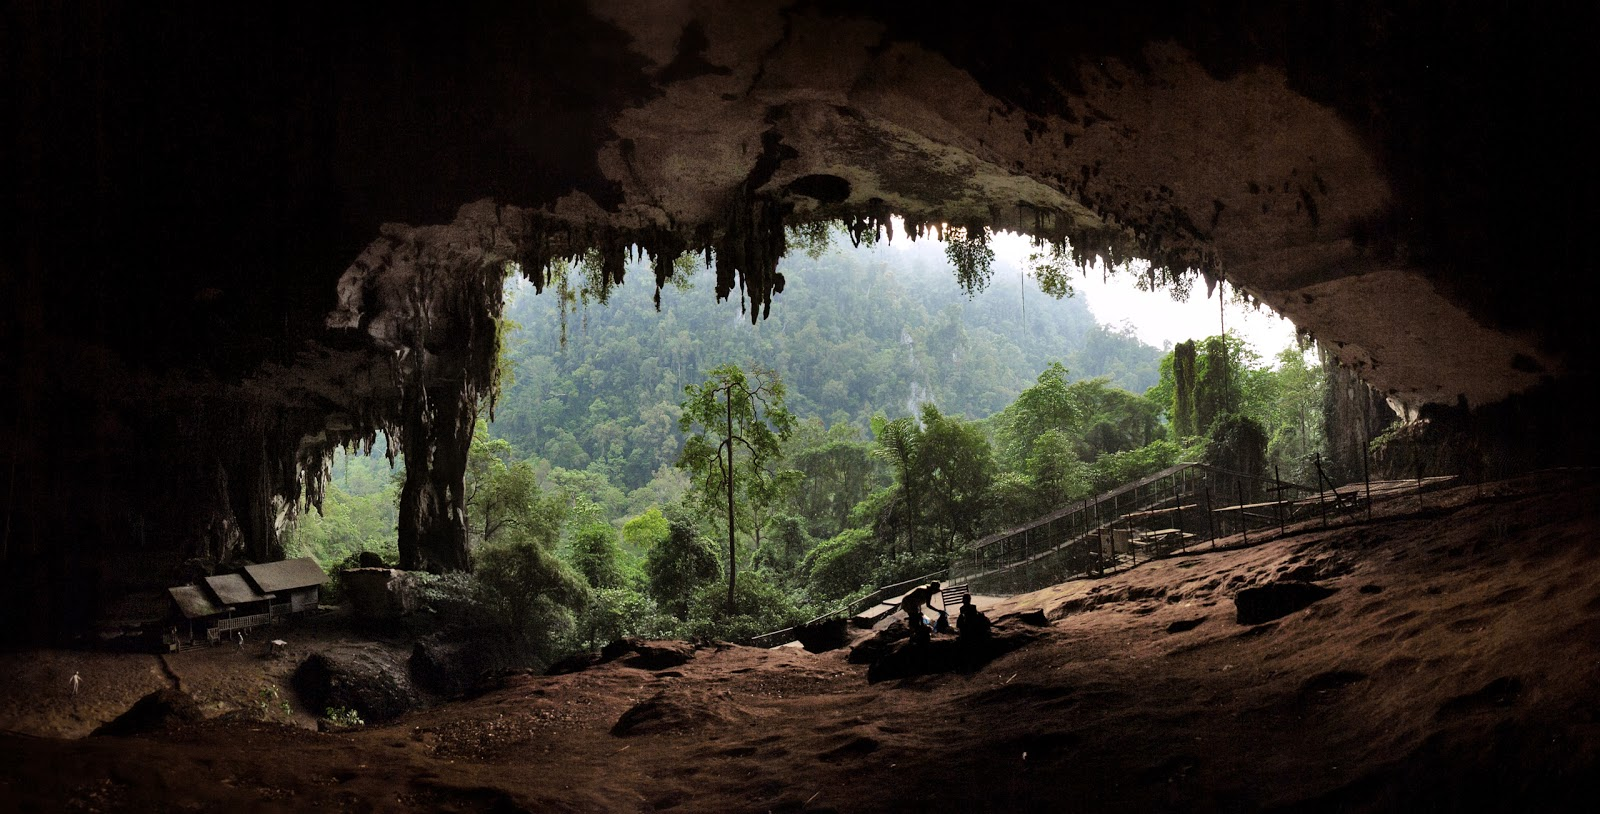 ... the sight seeing places that you can expect to see around Mulu Caves